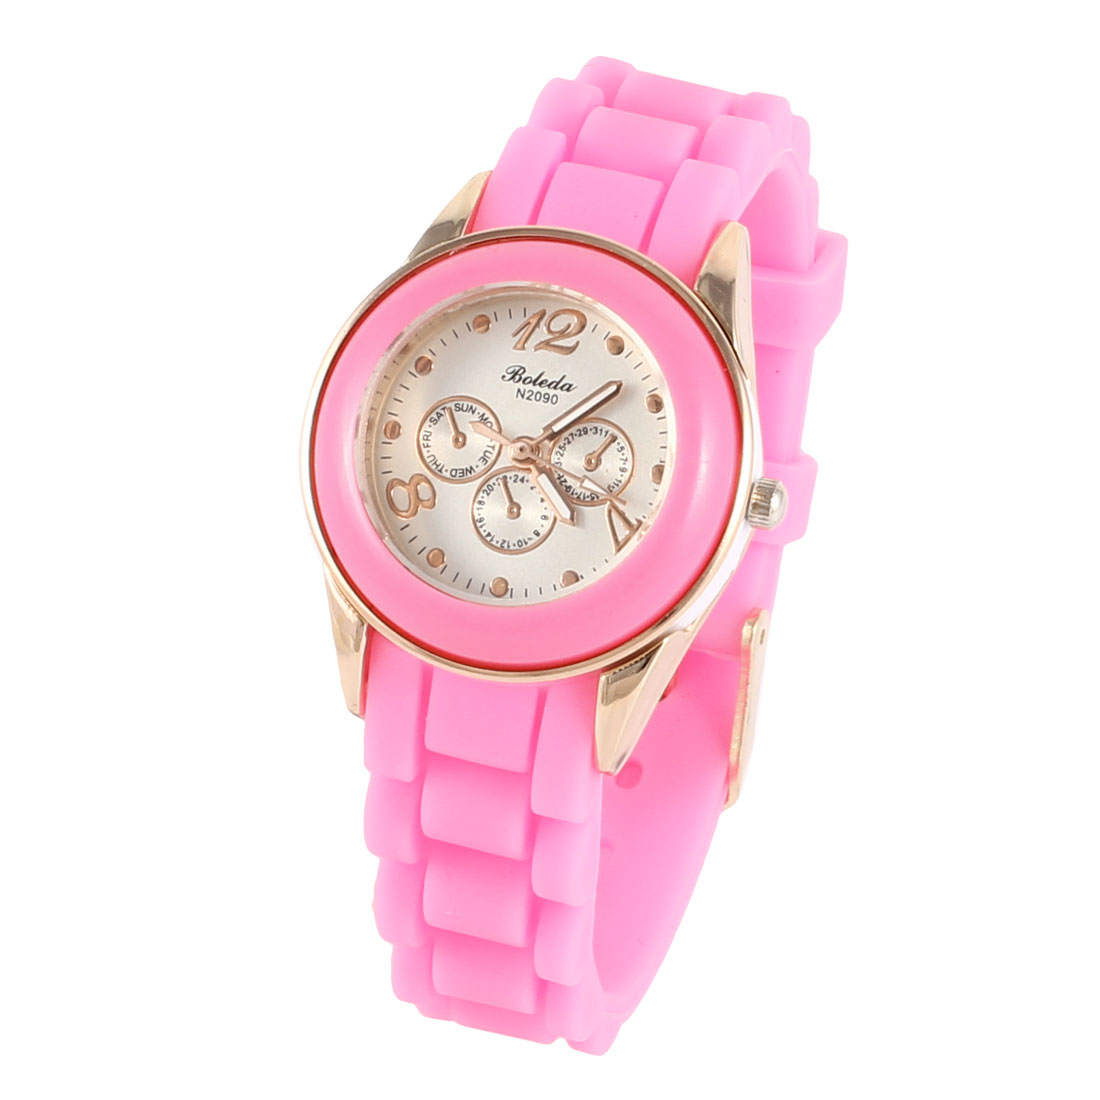 Woman 3cm Dia Dial Single Pin Buckle Silicone Wristband Quartz Watch Pink